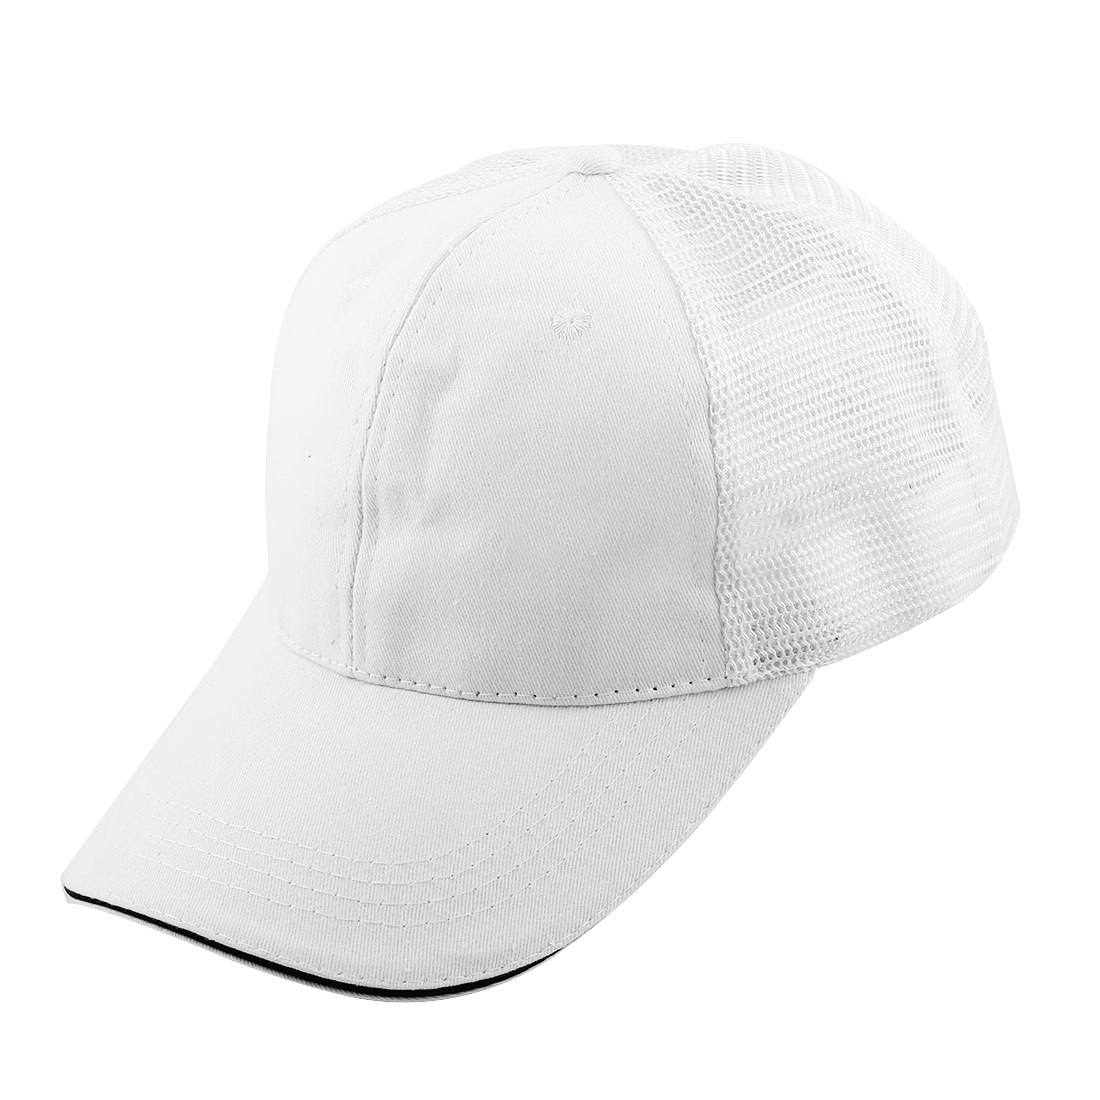 Unisex Cotton Blends Meshy Design 6 Panel Adjustable Golf Baseball Cap Outdoor Sports Hat White